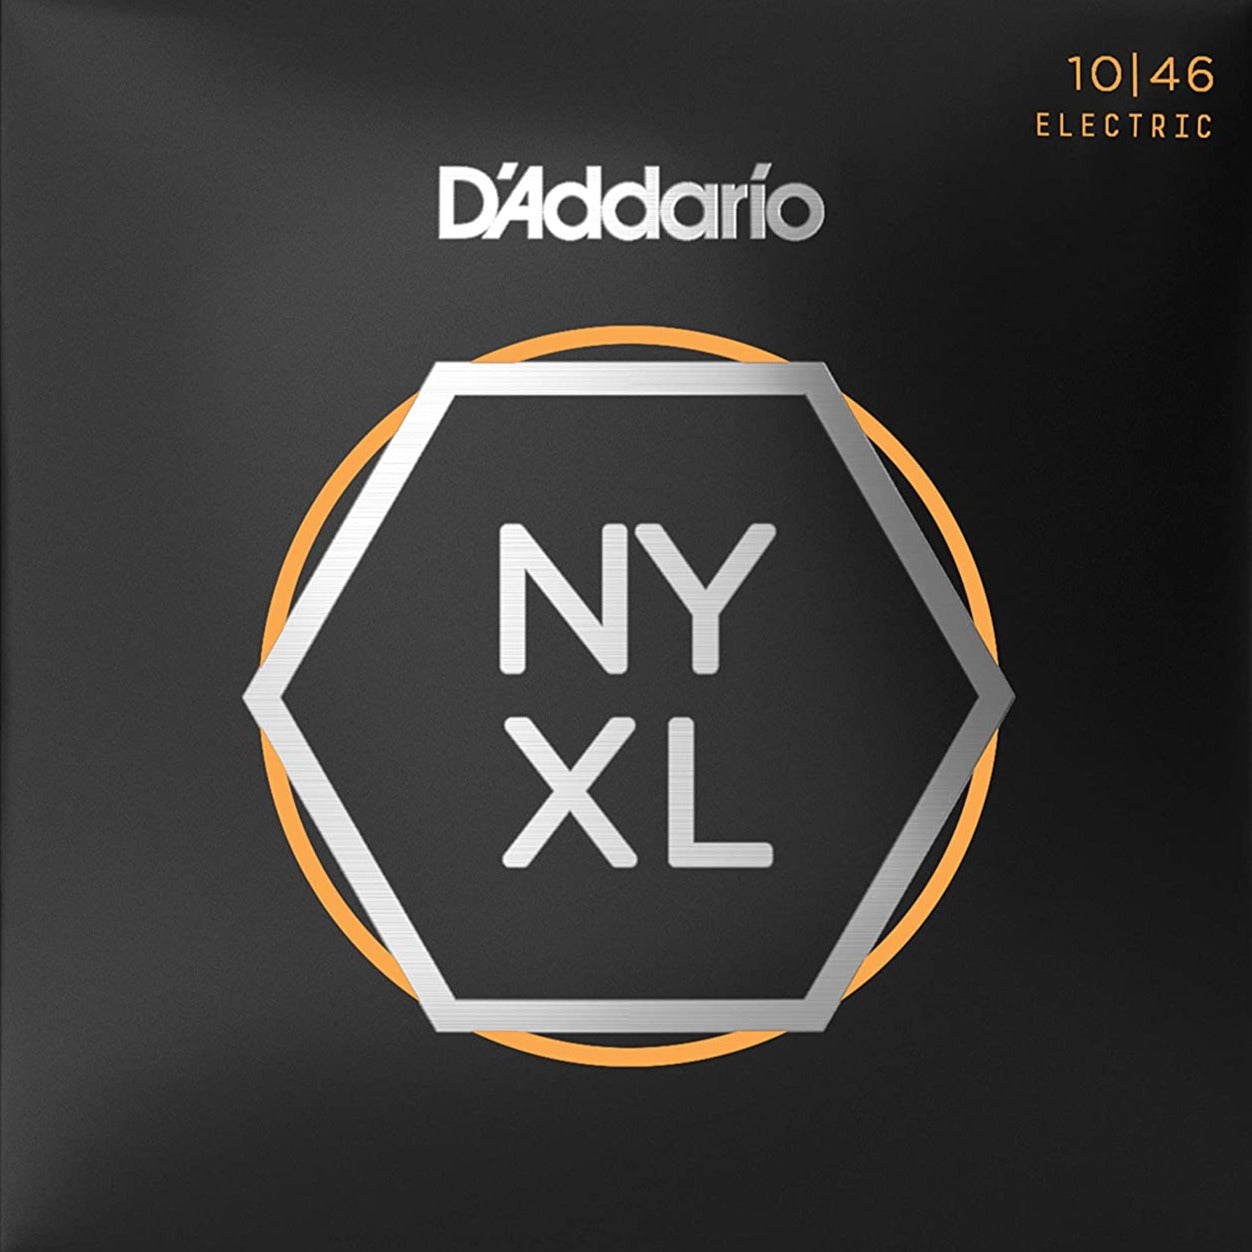 D'Addario NYXL1046 Electric Guitar Strings - Regular Light - 10-46